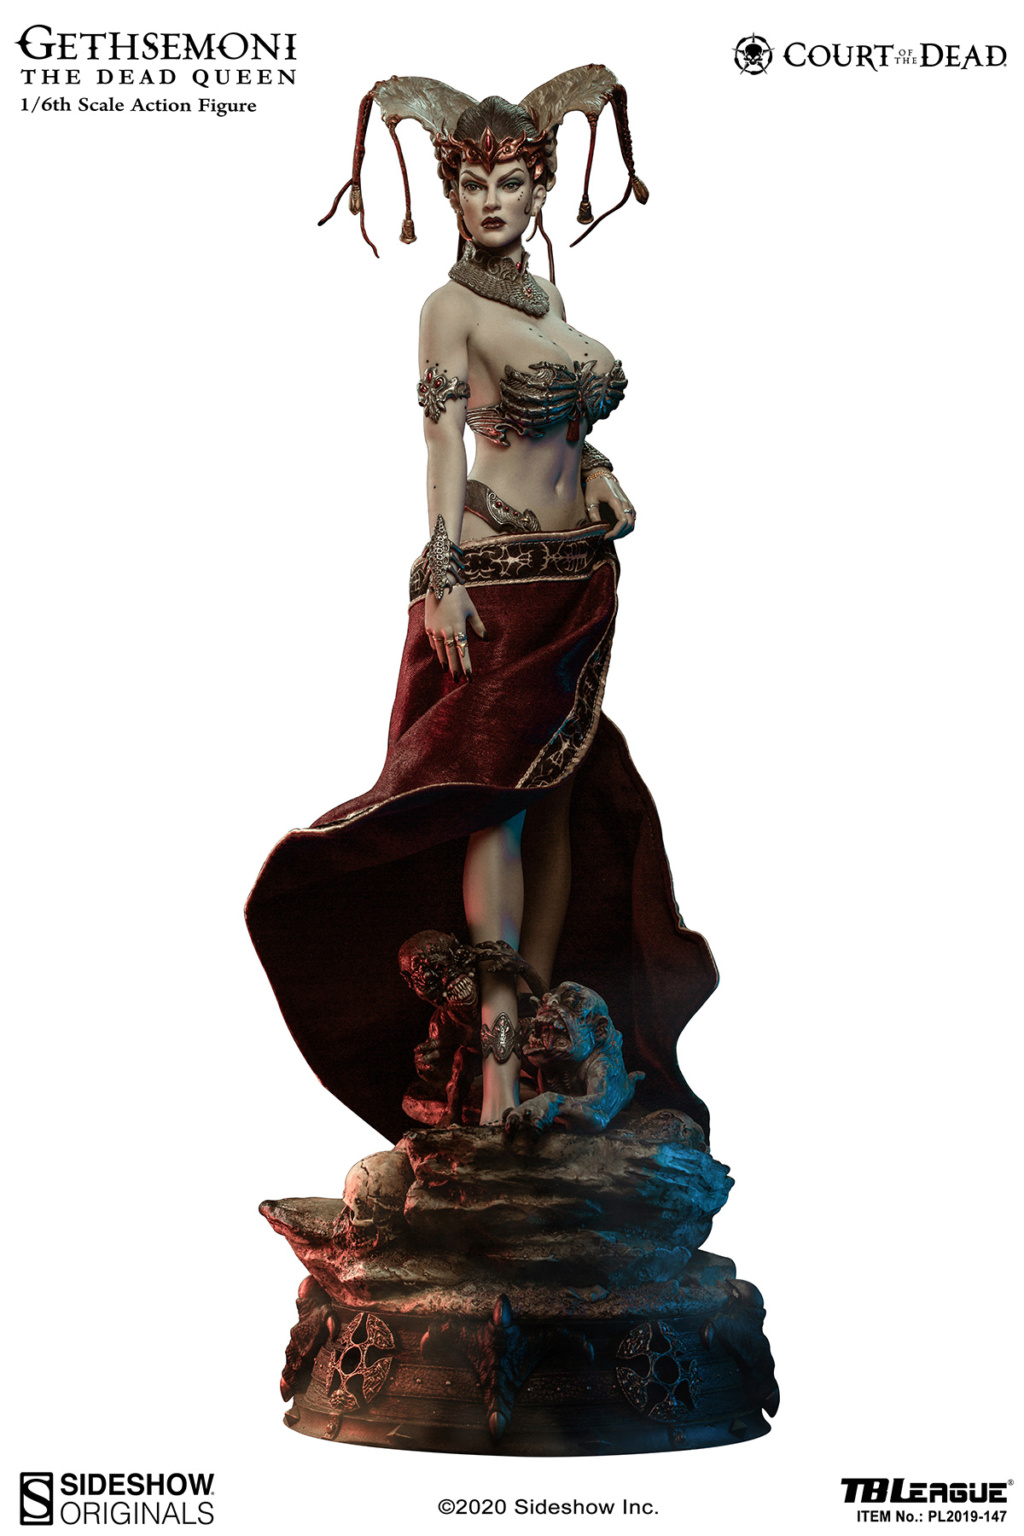 sideshow - NEW PRODUCT: Tbleague x SIDESHOW New: 1/6 Court of the Dead: Gethsemoni The Dead Queen action figure (PL2019-147) 16523610